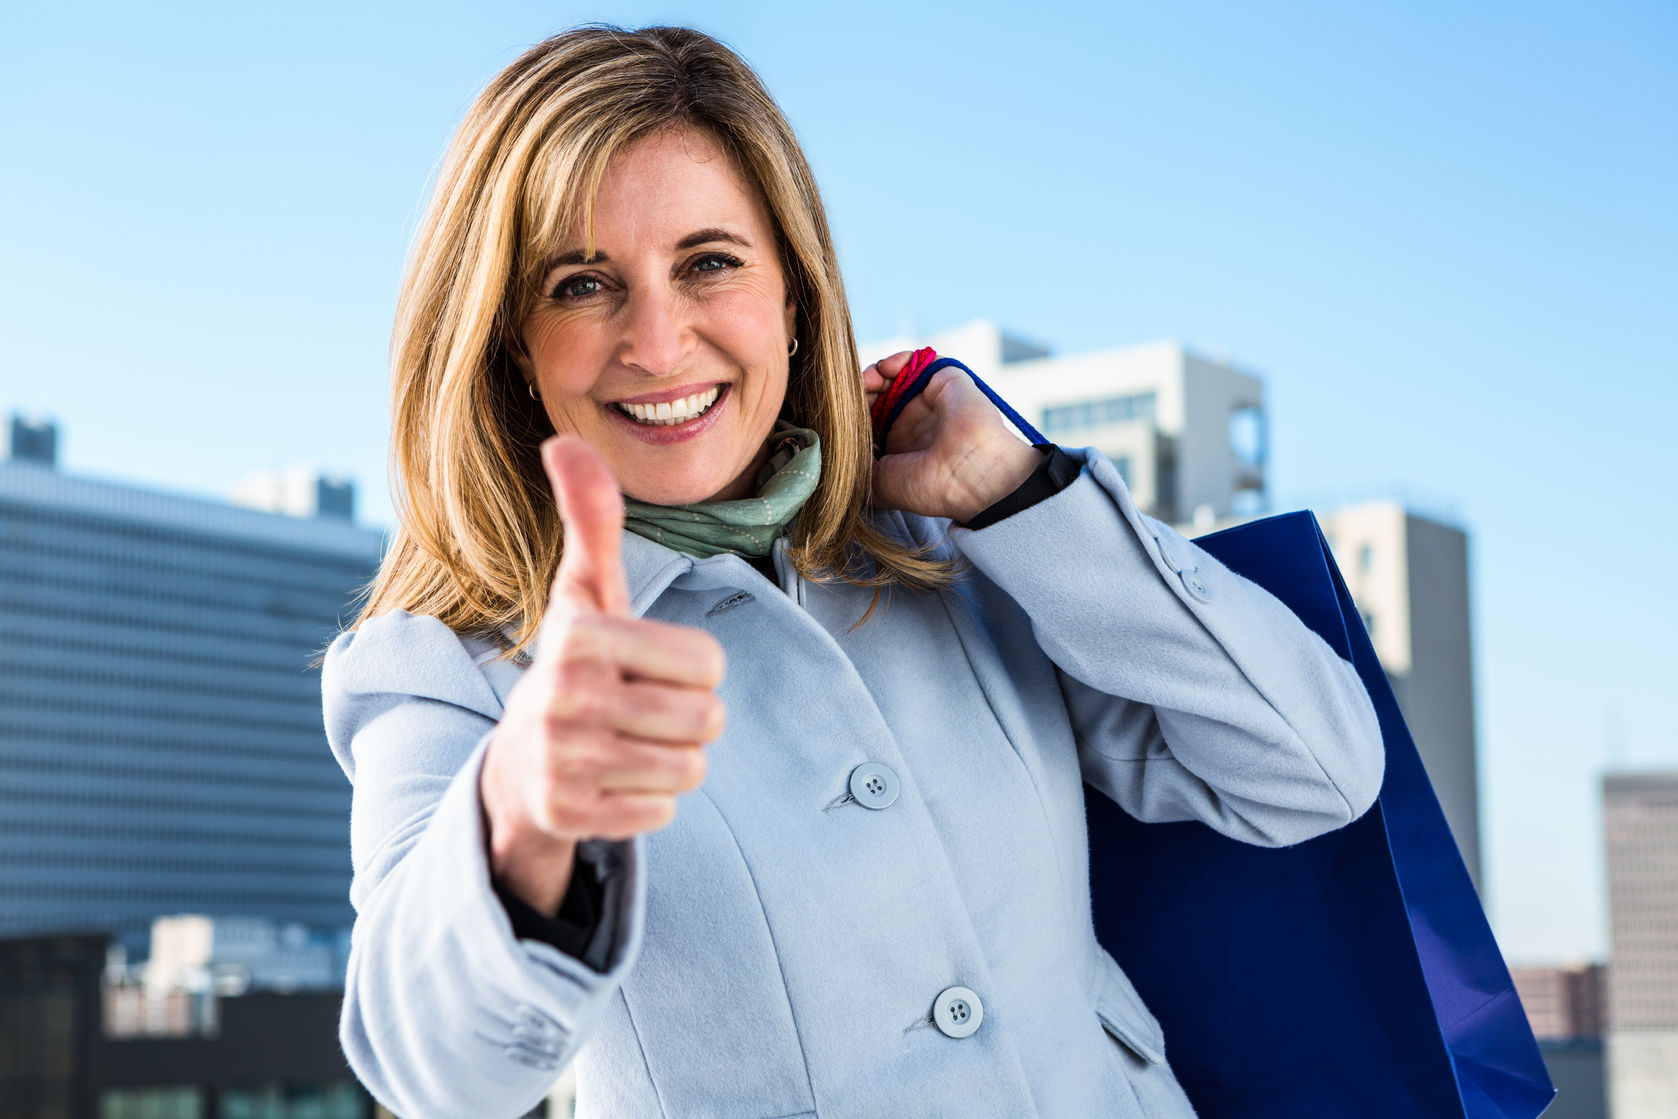 51330935 - woman doing a thumbs up during her shopping in town